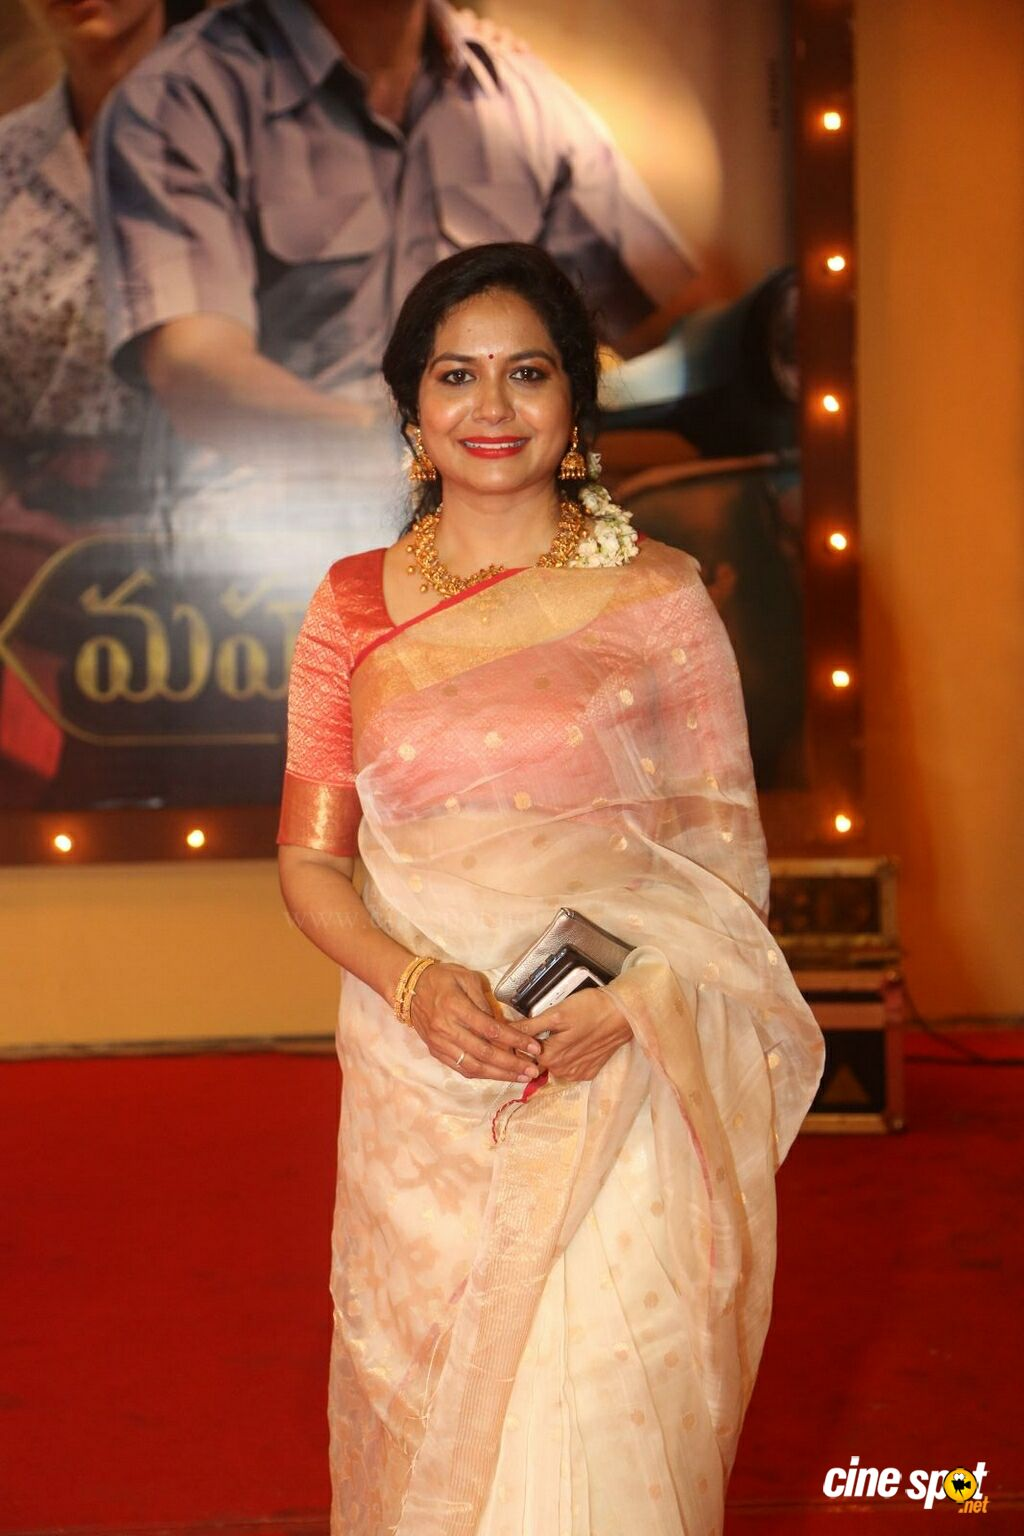 Sunitha Upadrashta at Mahanati Audio Launch (2)